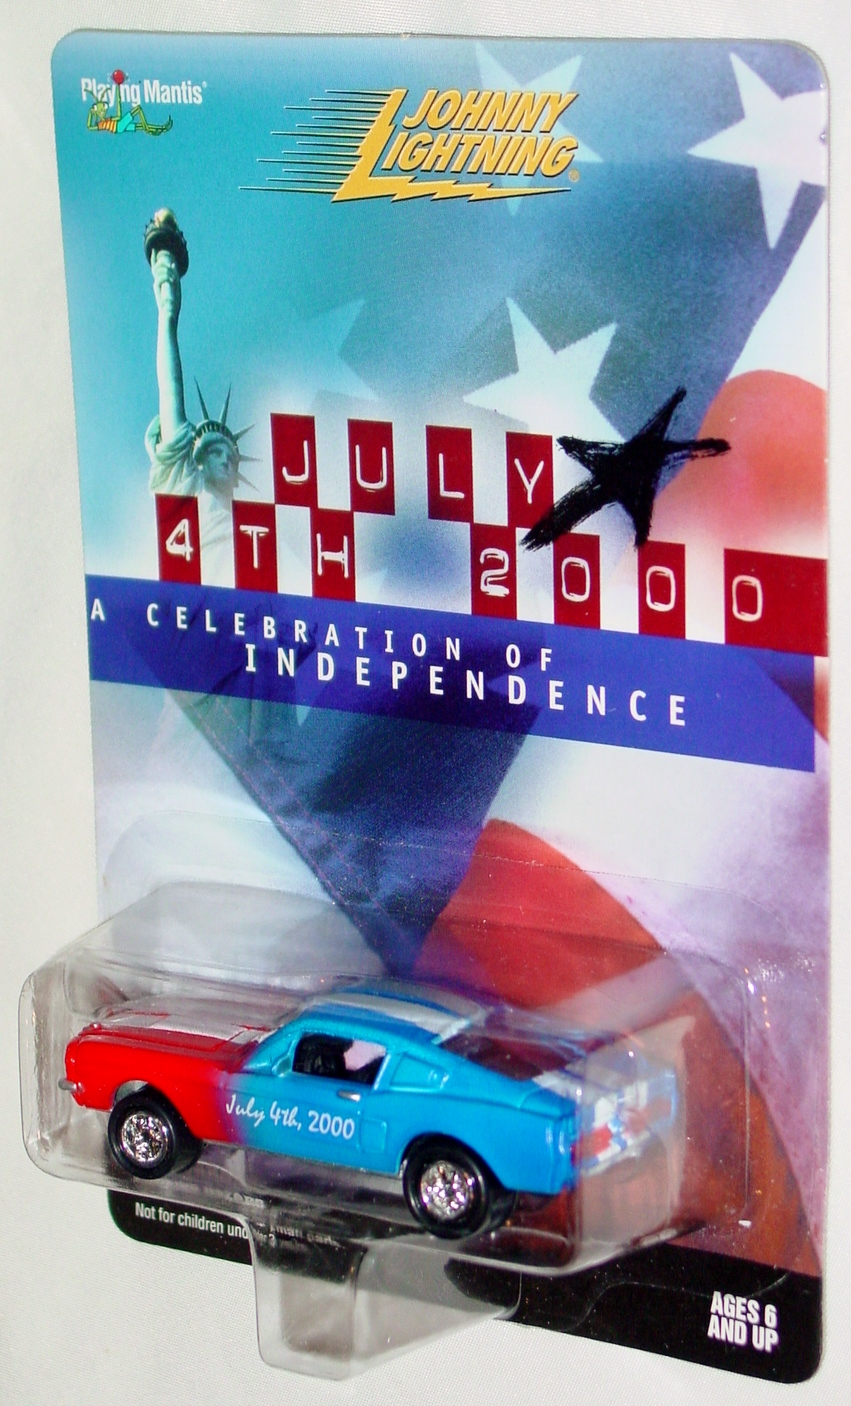 White Lightning - JULY 4TH 2000 Shelby Red and Blue and White Ltd 5000